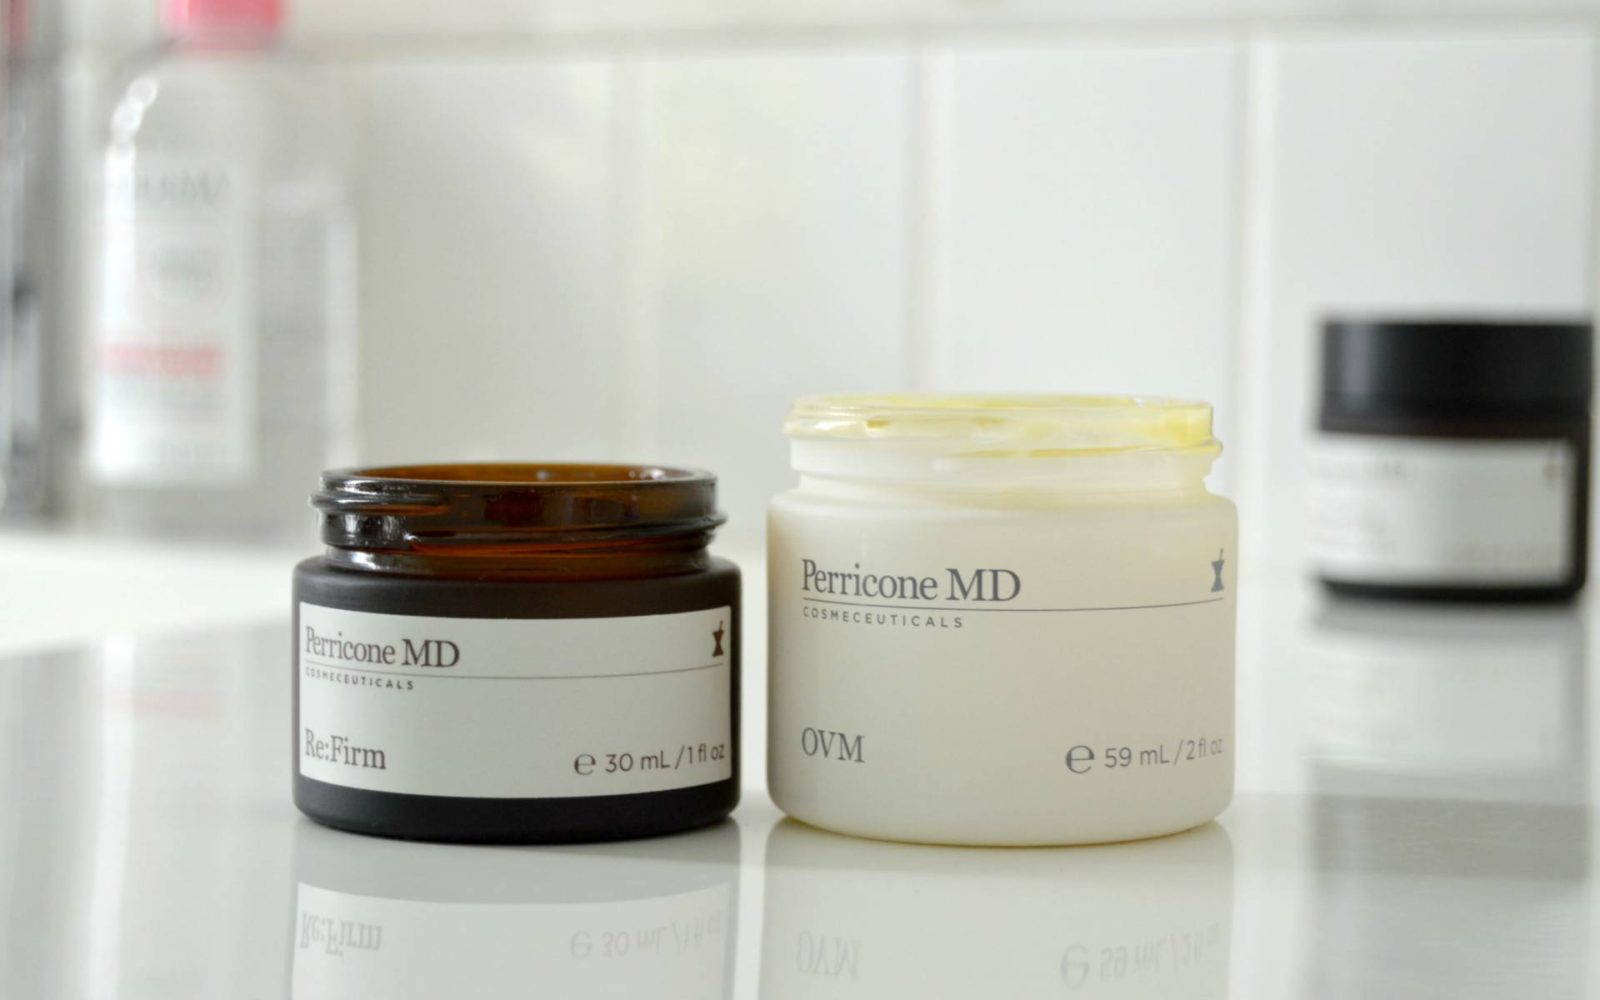 Anti-Aging Daytime Treatments from Perricone MD – Re:Firm & OVM Cream